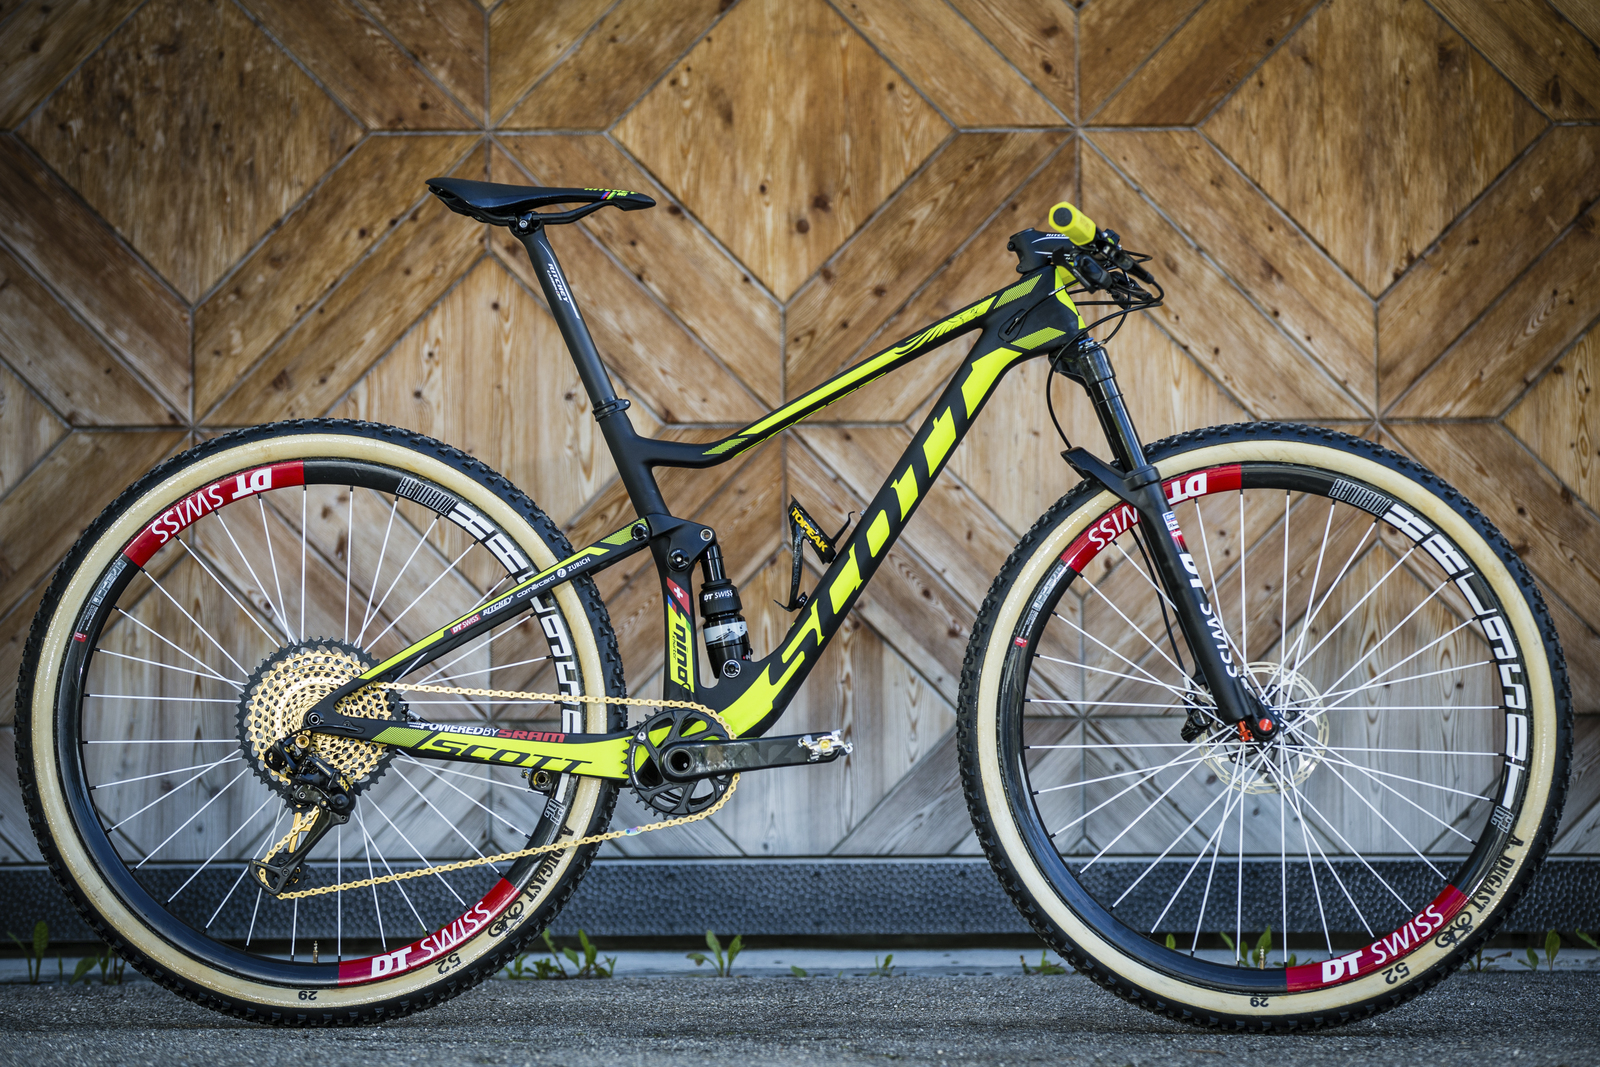 Scott Spark Supersonic, Schurters MTB for the World Cup